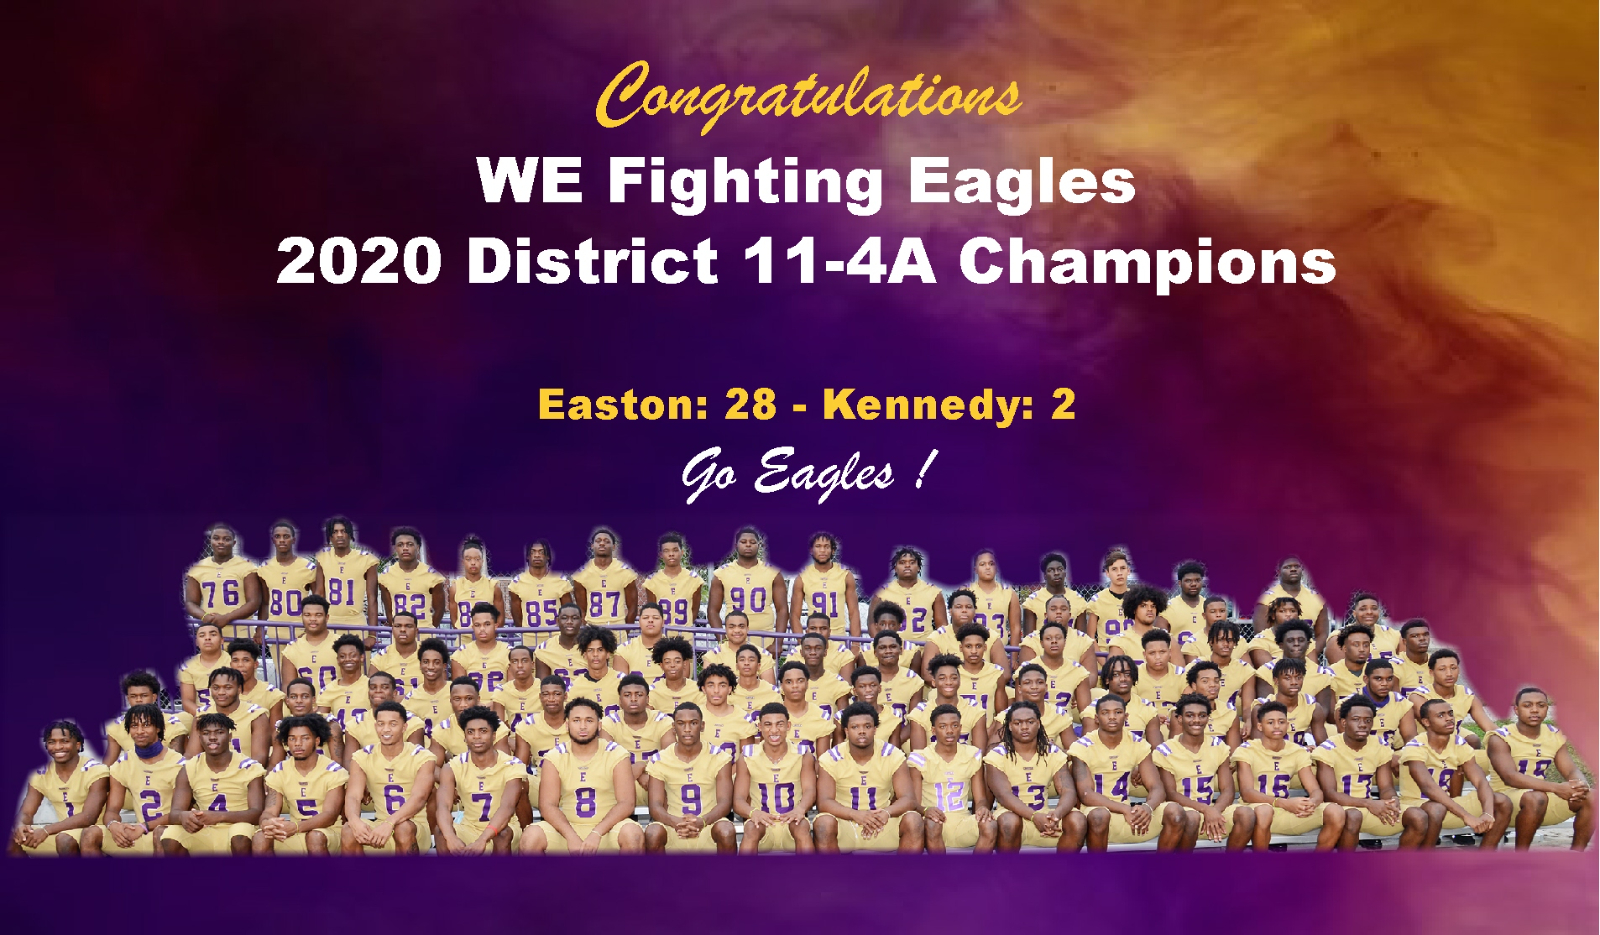 Eagles: District 11-4A District Champions